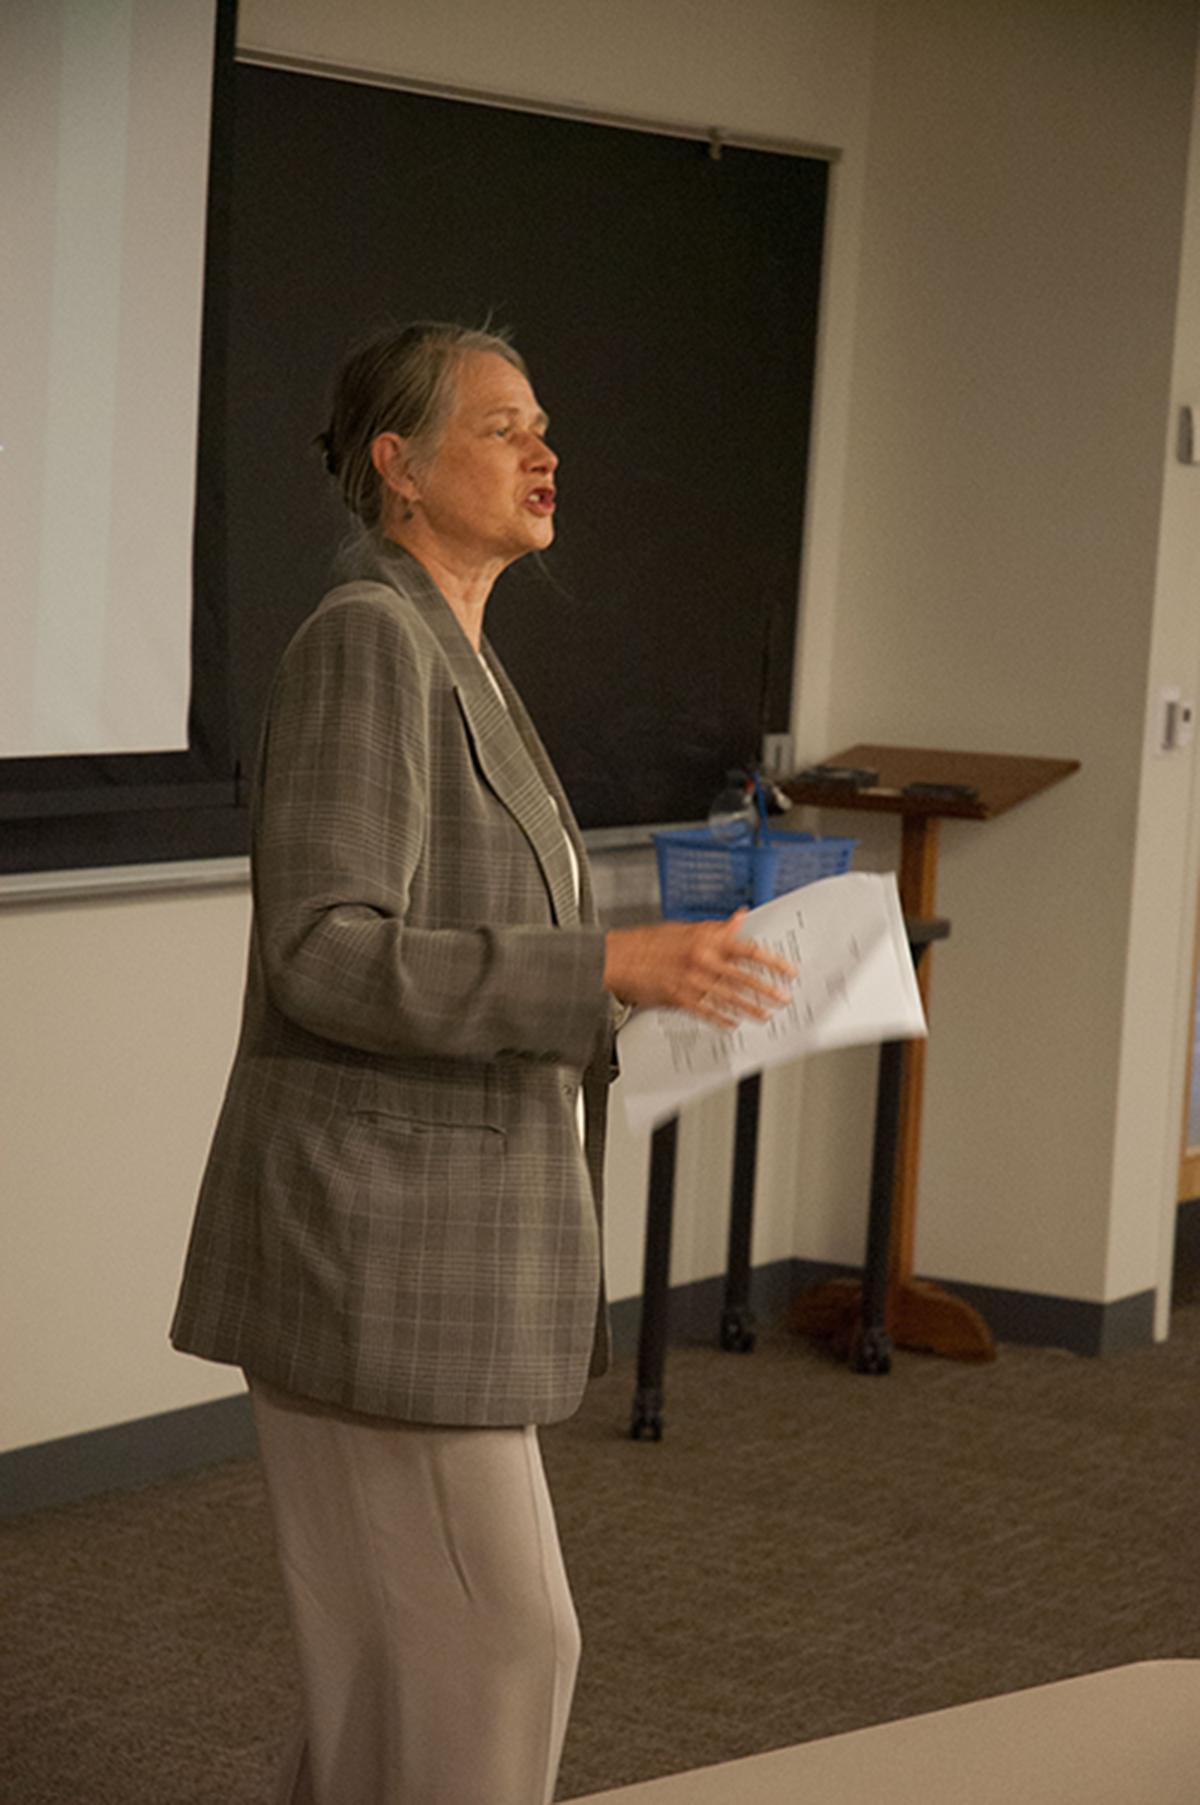 Dr. Lala Zuo is introduced to the students and faculty attending her lecture at Lehigh University